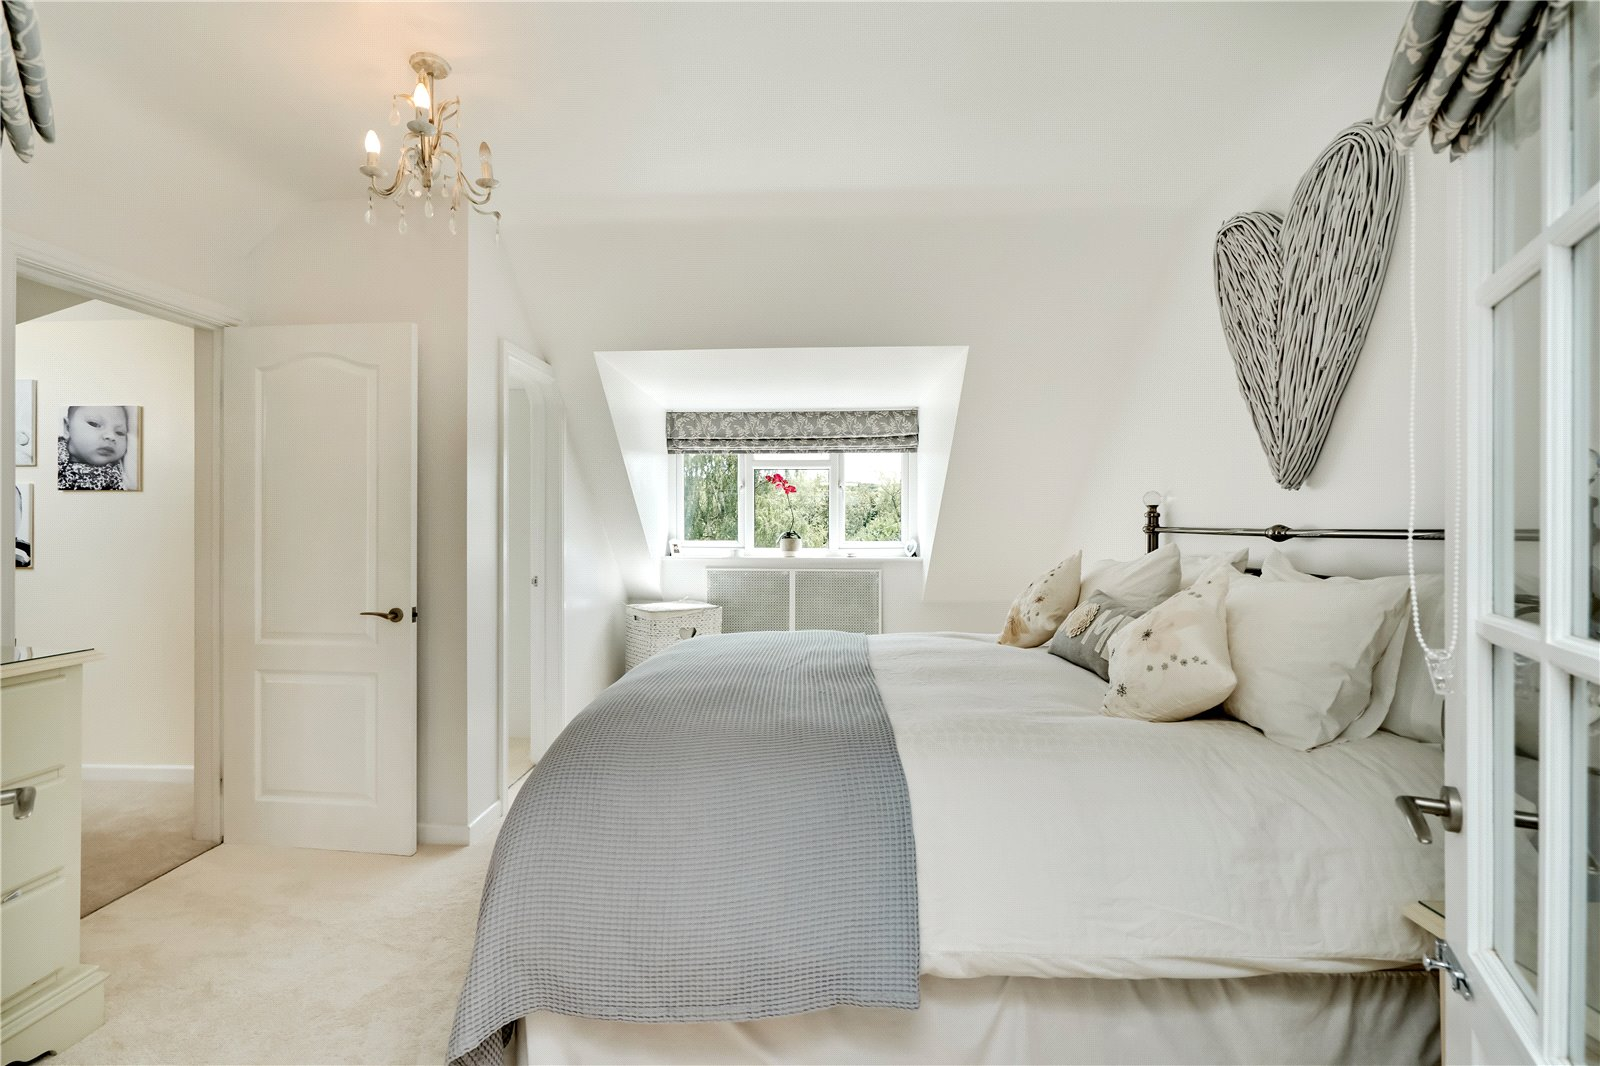 4 bed house for sale in Welwyn, AL6 0QG 18